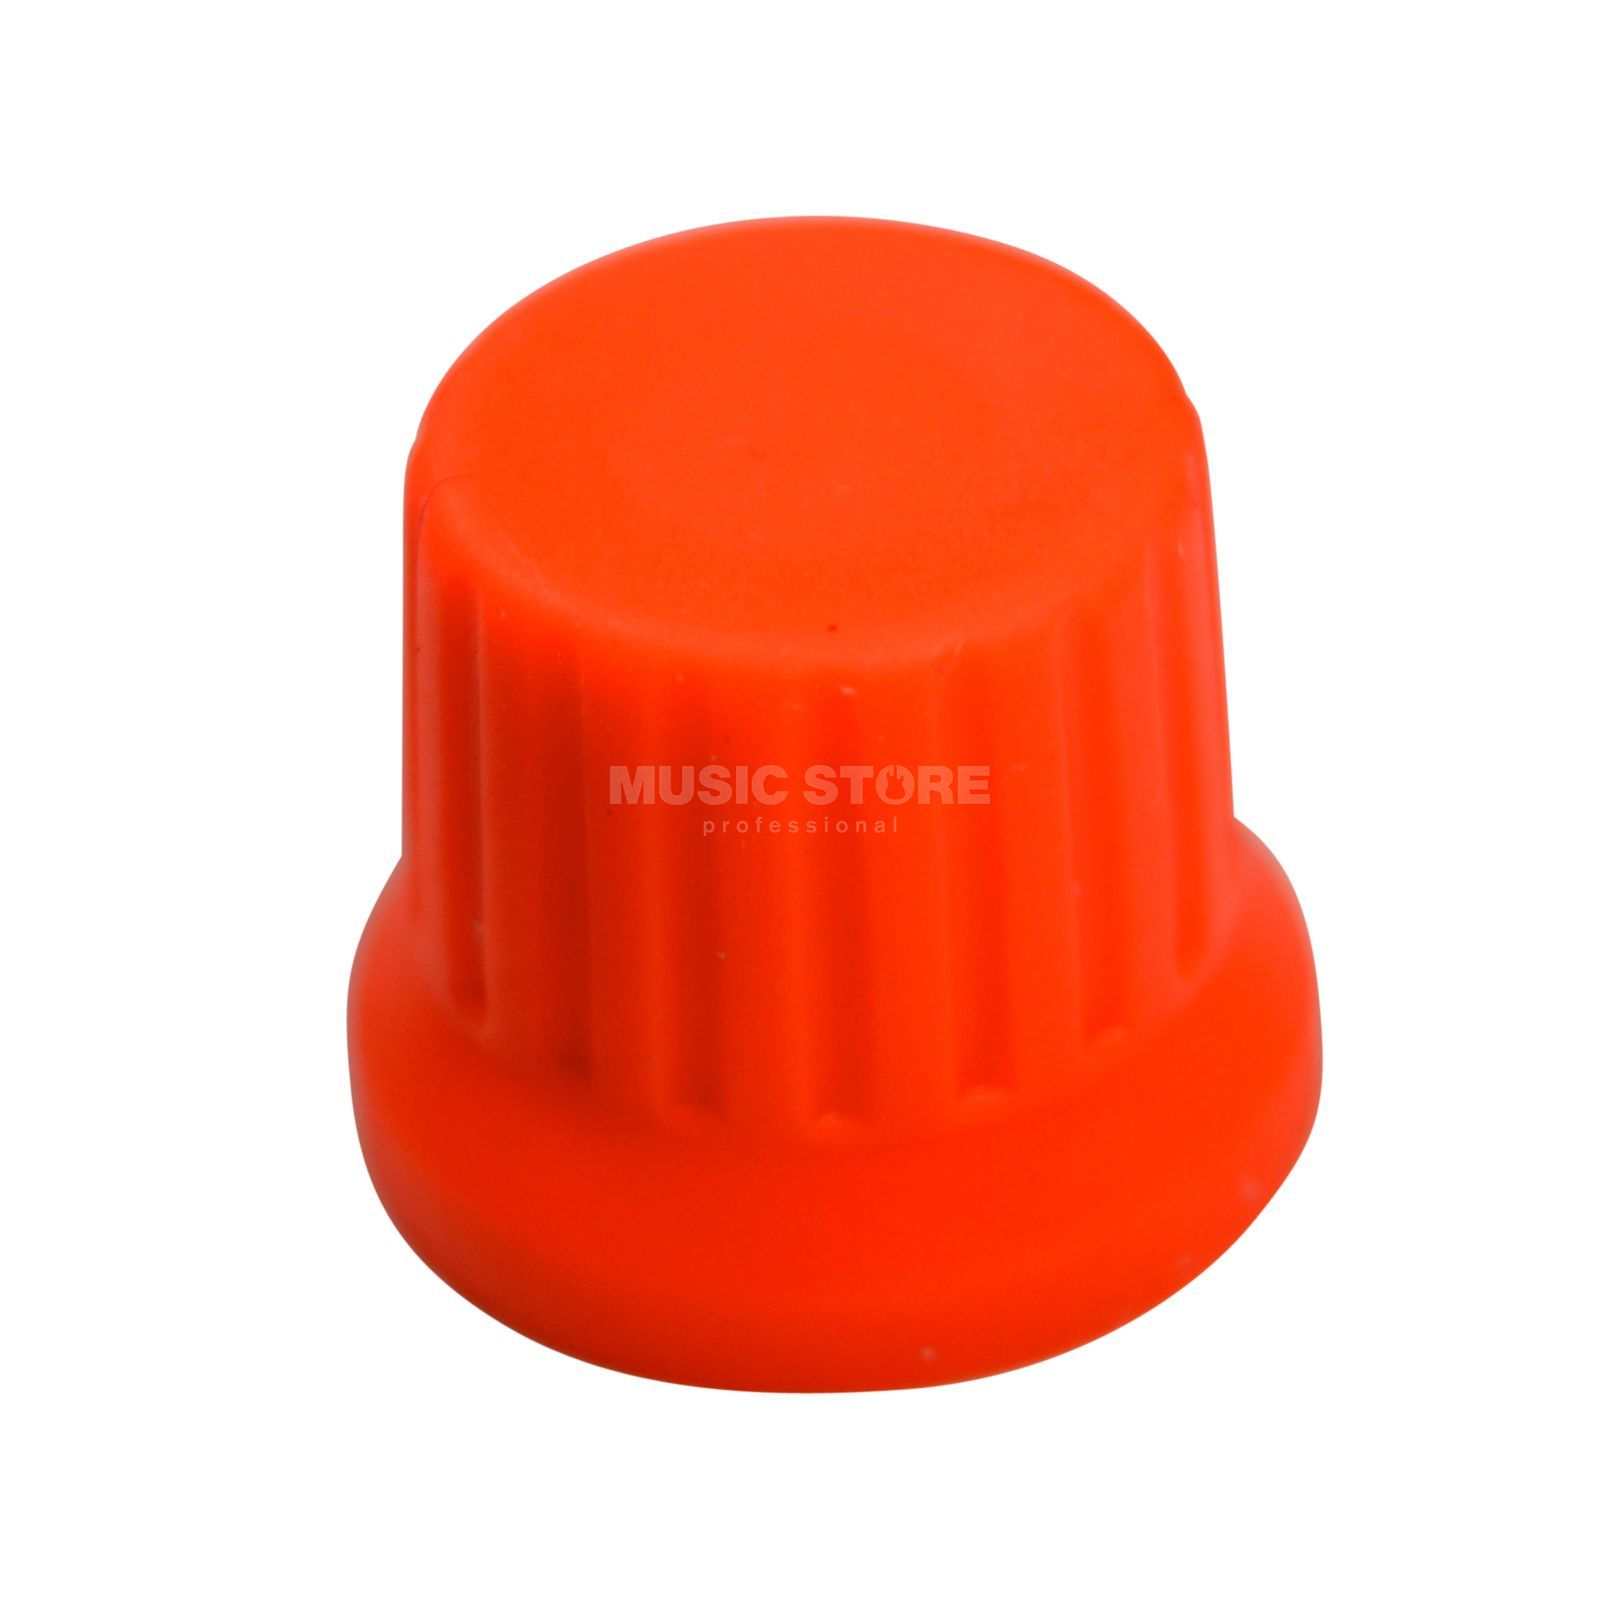 DJ TECHTOOLS Chroma Caps Encor Knob neon orange Produktbillede